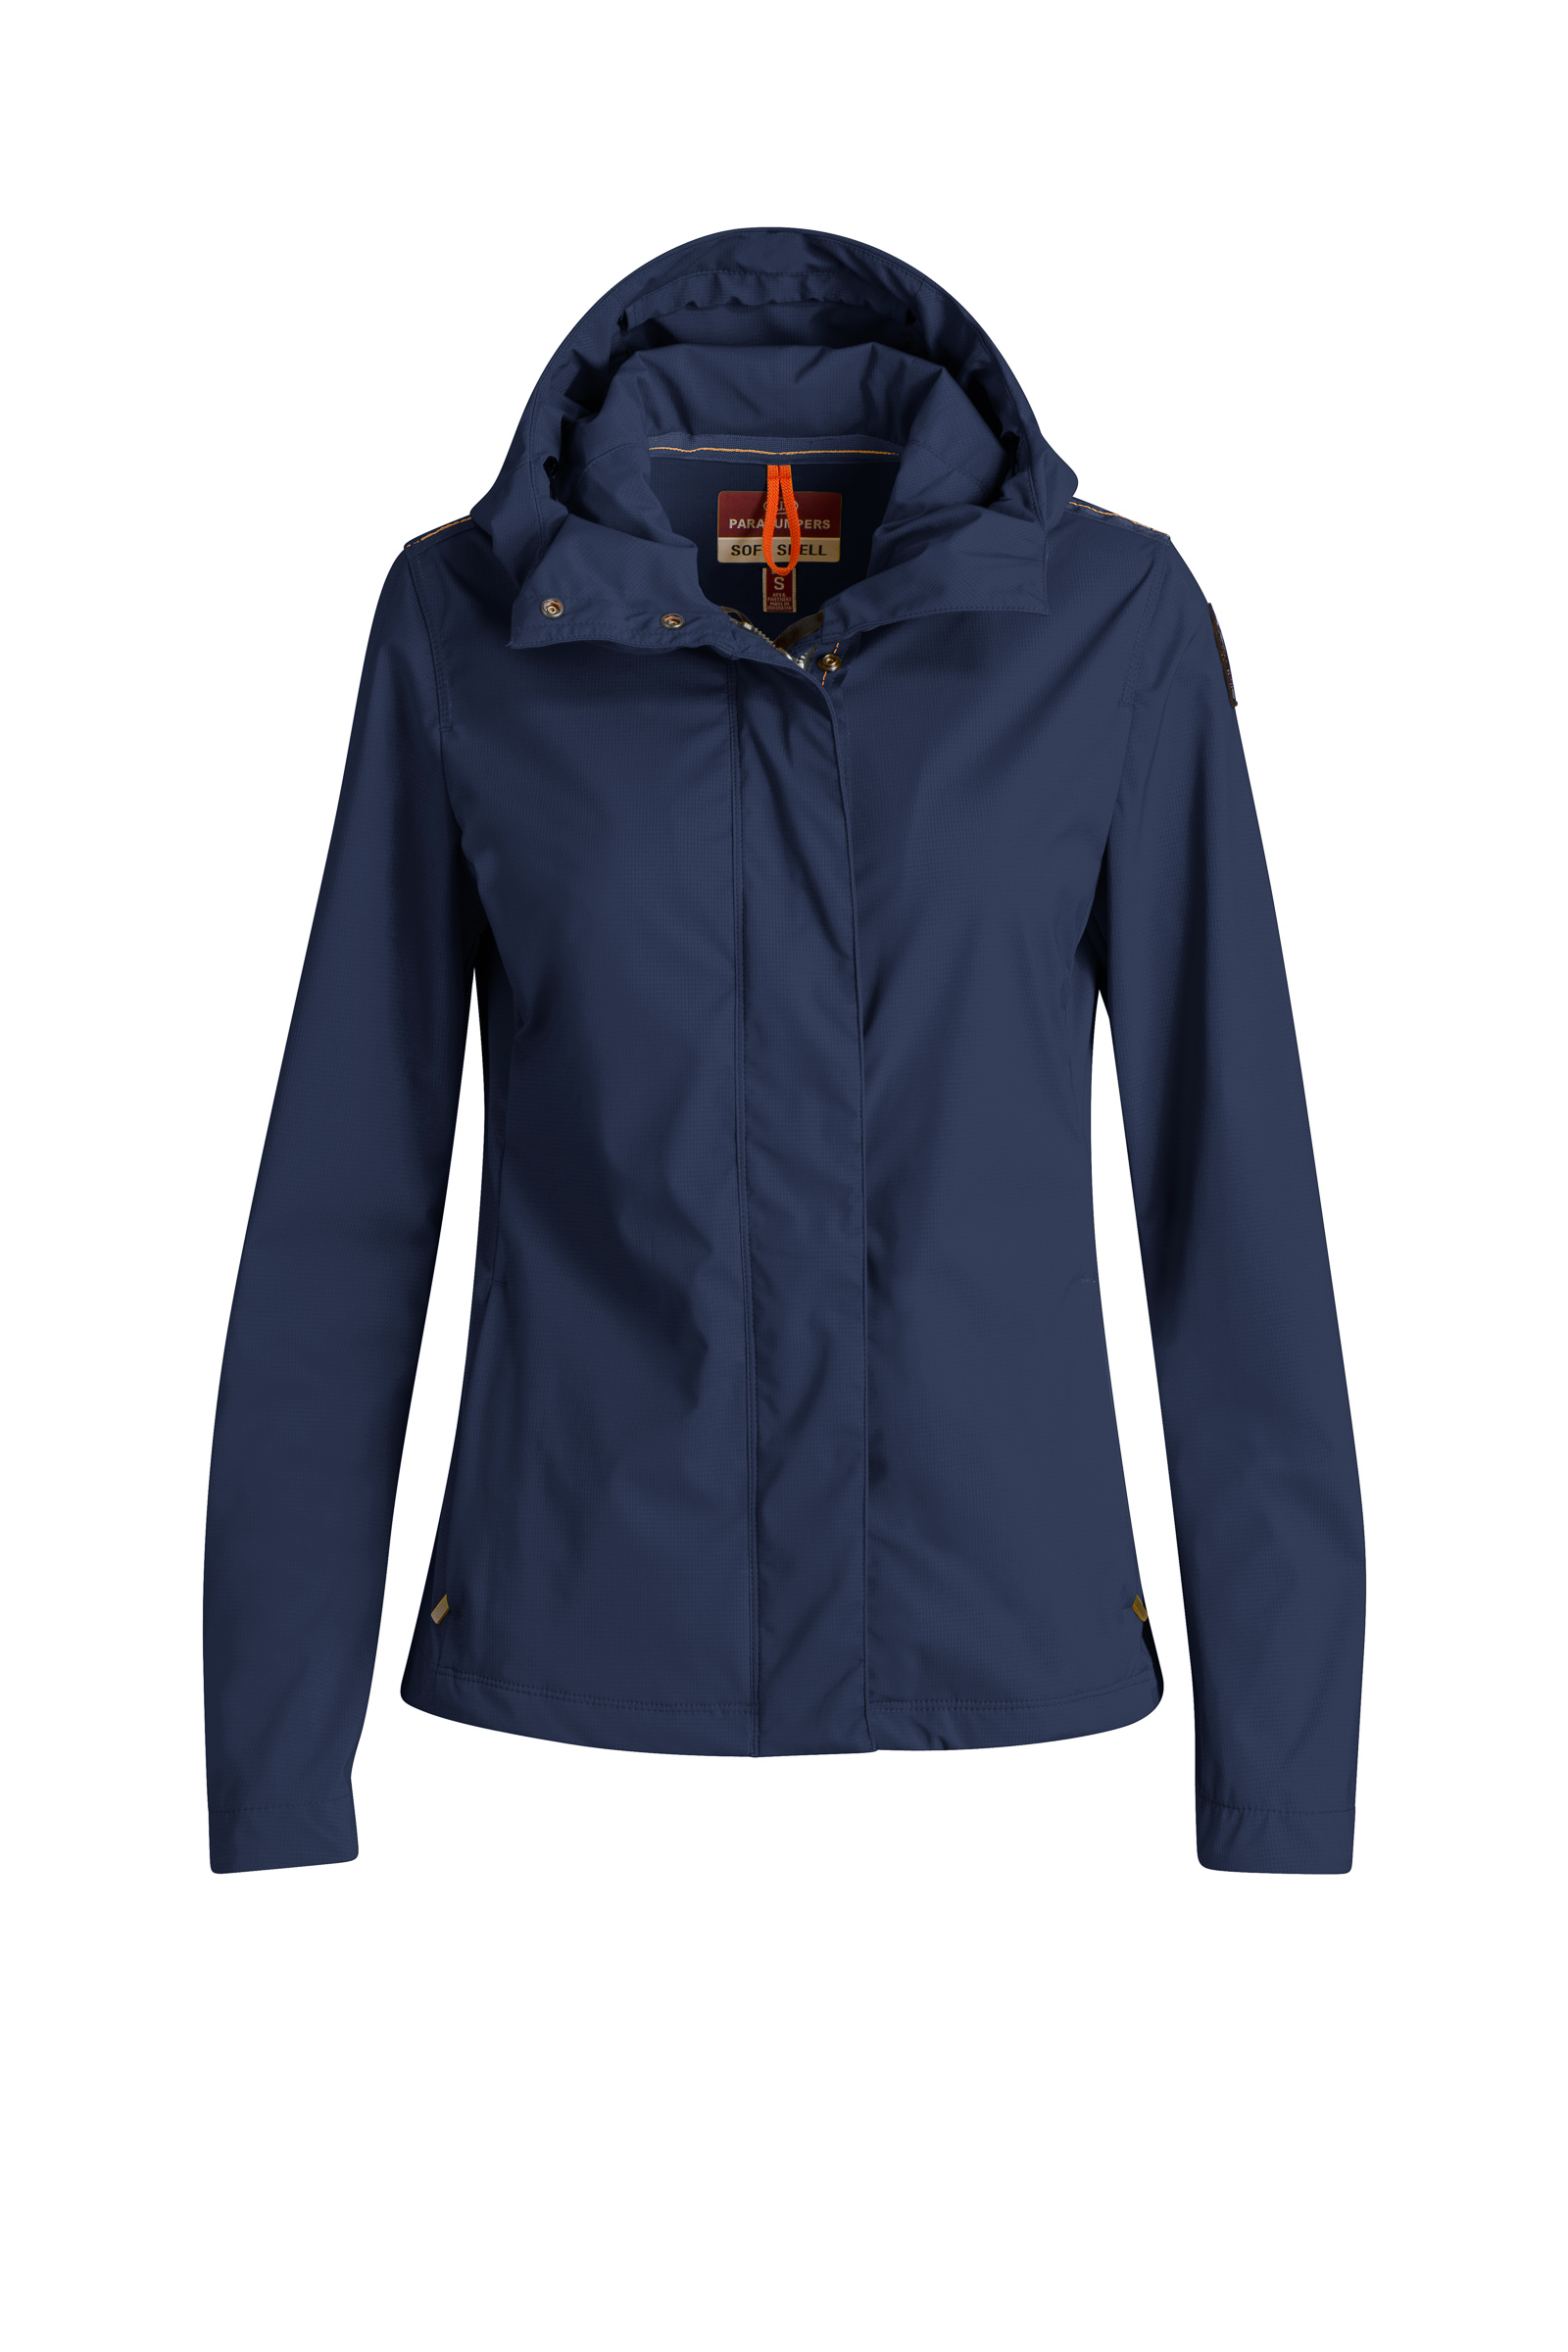 buy online ad34b c9f80 Parajumpers Cecilia Lightweight Softshell - Women's